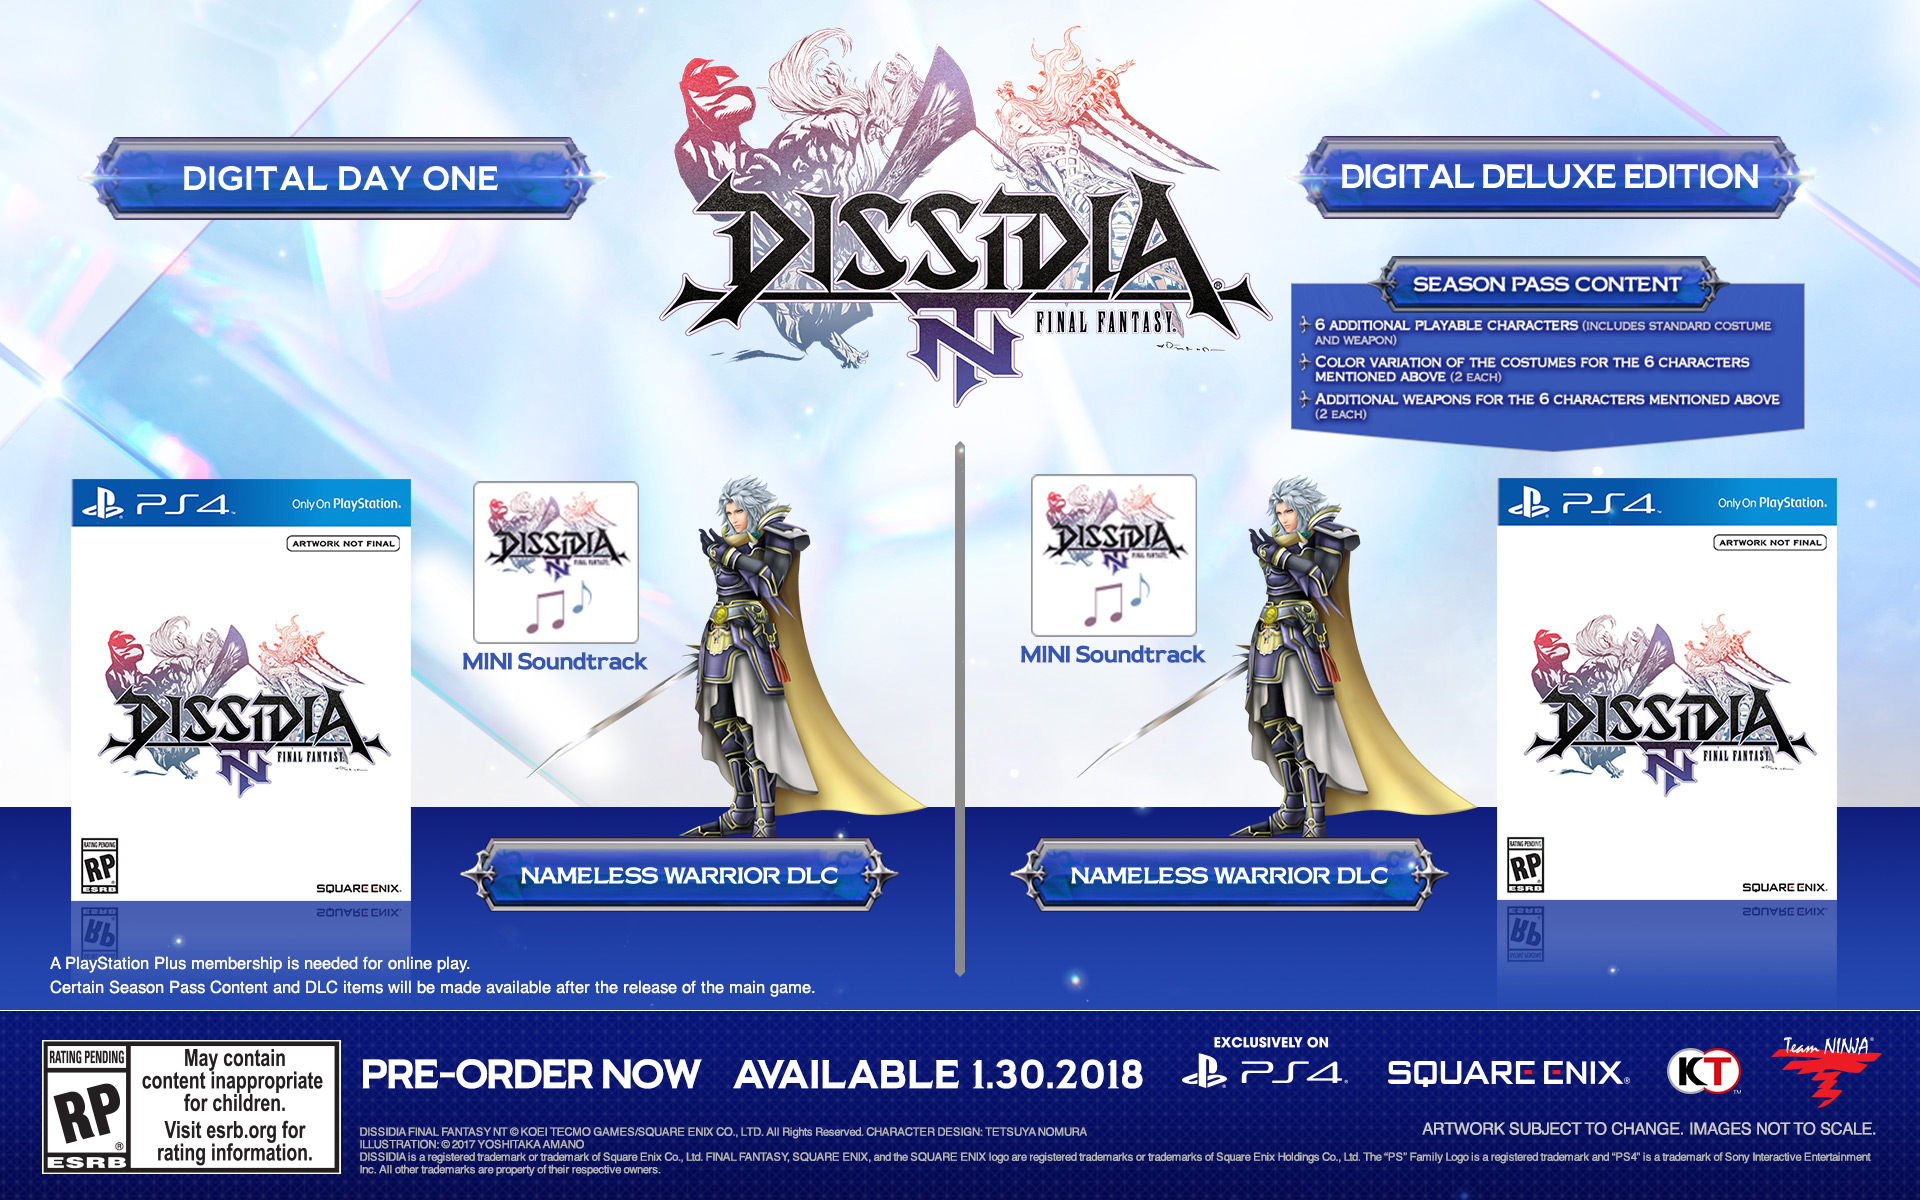 Dissidia Final Fantasy NT Releasing on January 30th 2018